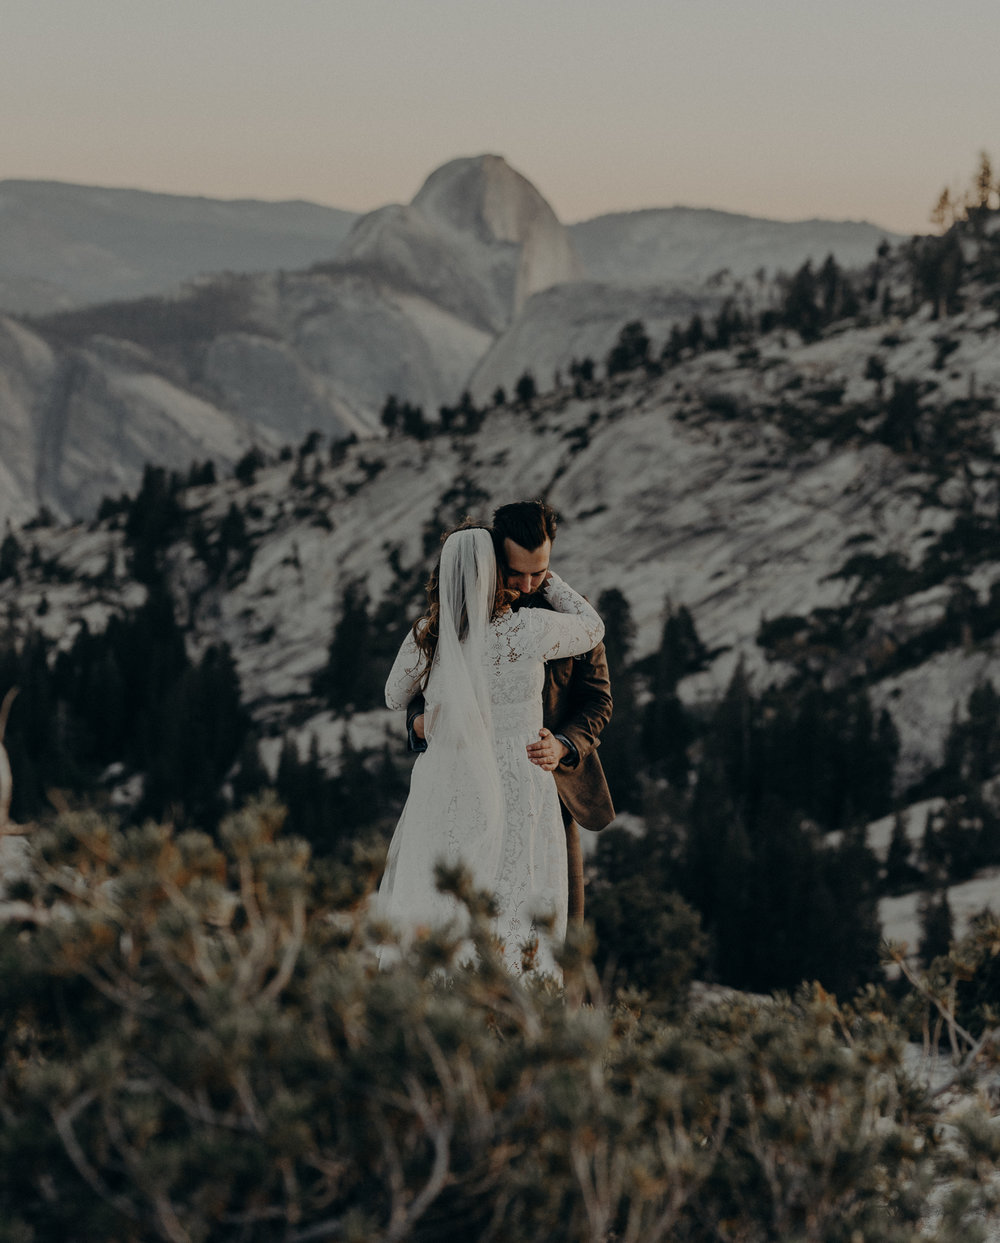 Yosemite Elopement Photographer - Evergreen Lodge Wedding Photographer - IsaiahAndTaylor.com-052.jpg